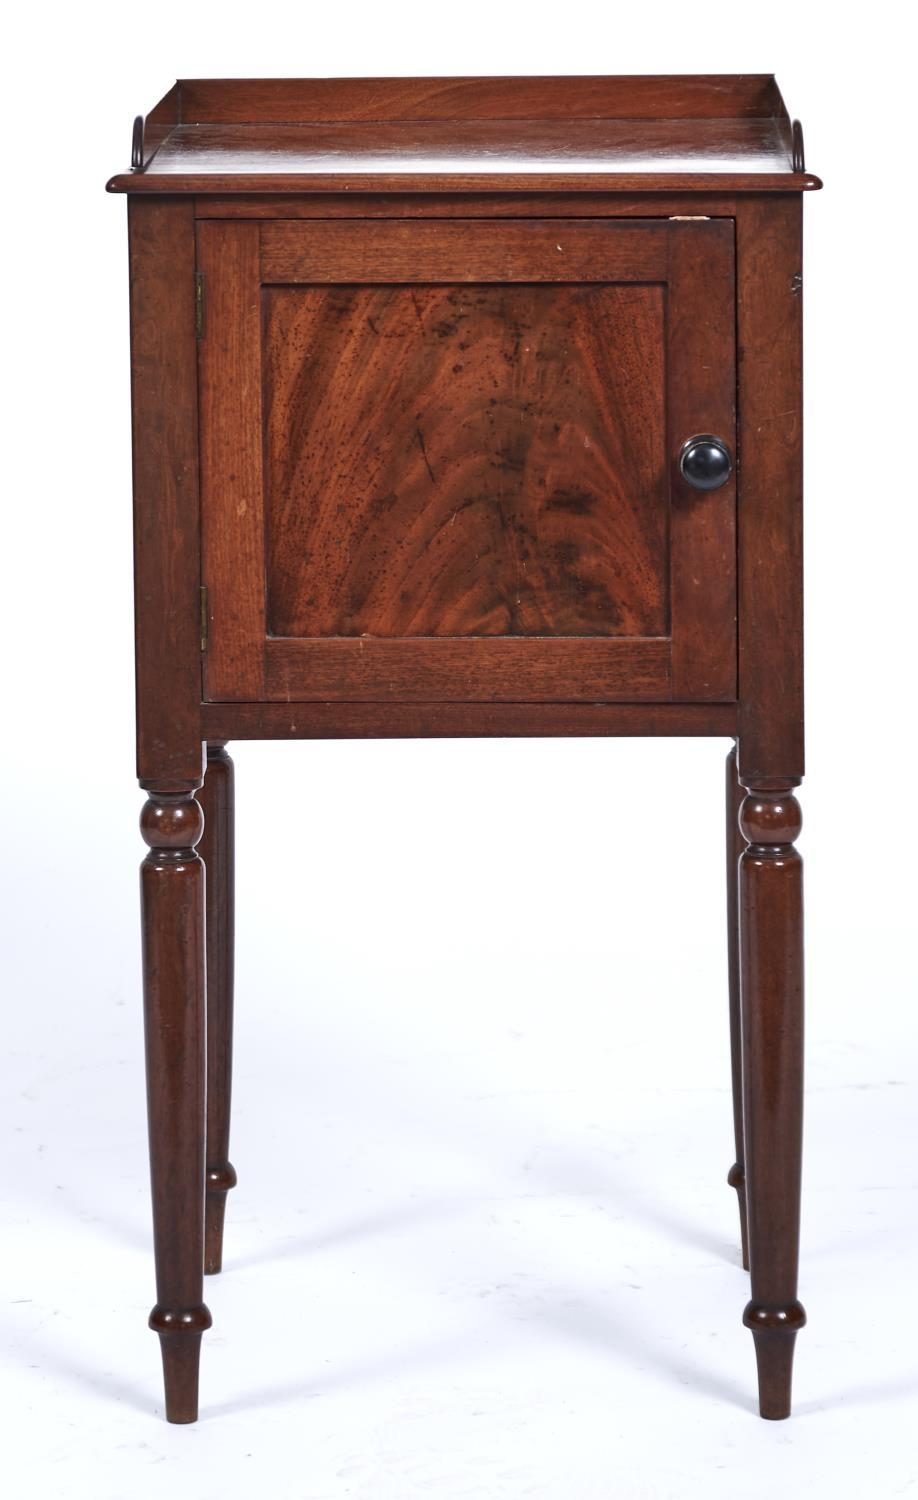 A VICTORIAN MAHOGANY NIGHT CUPBOARD, C1860, THE FIGURED TOP WITH THREE QUARTER GALLERY ABOVE A